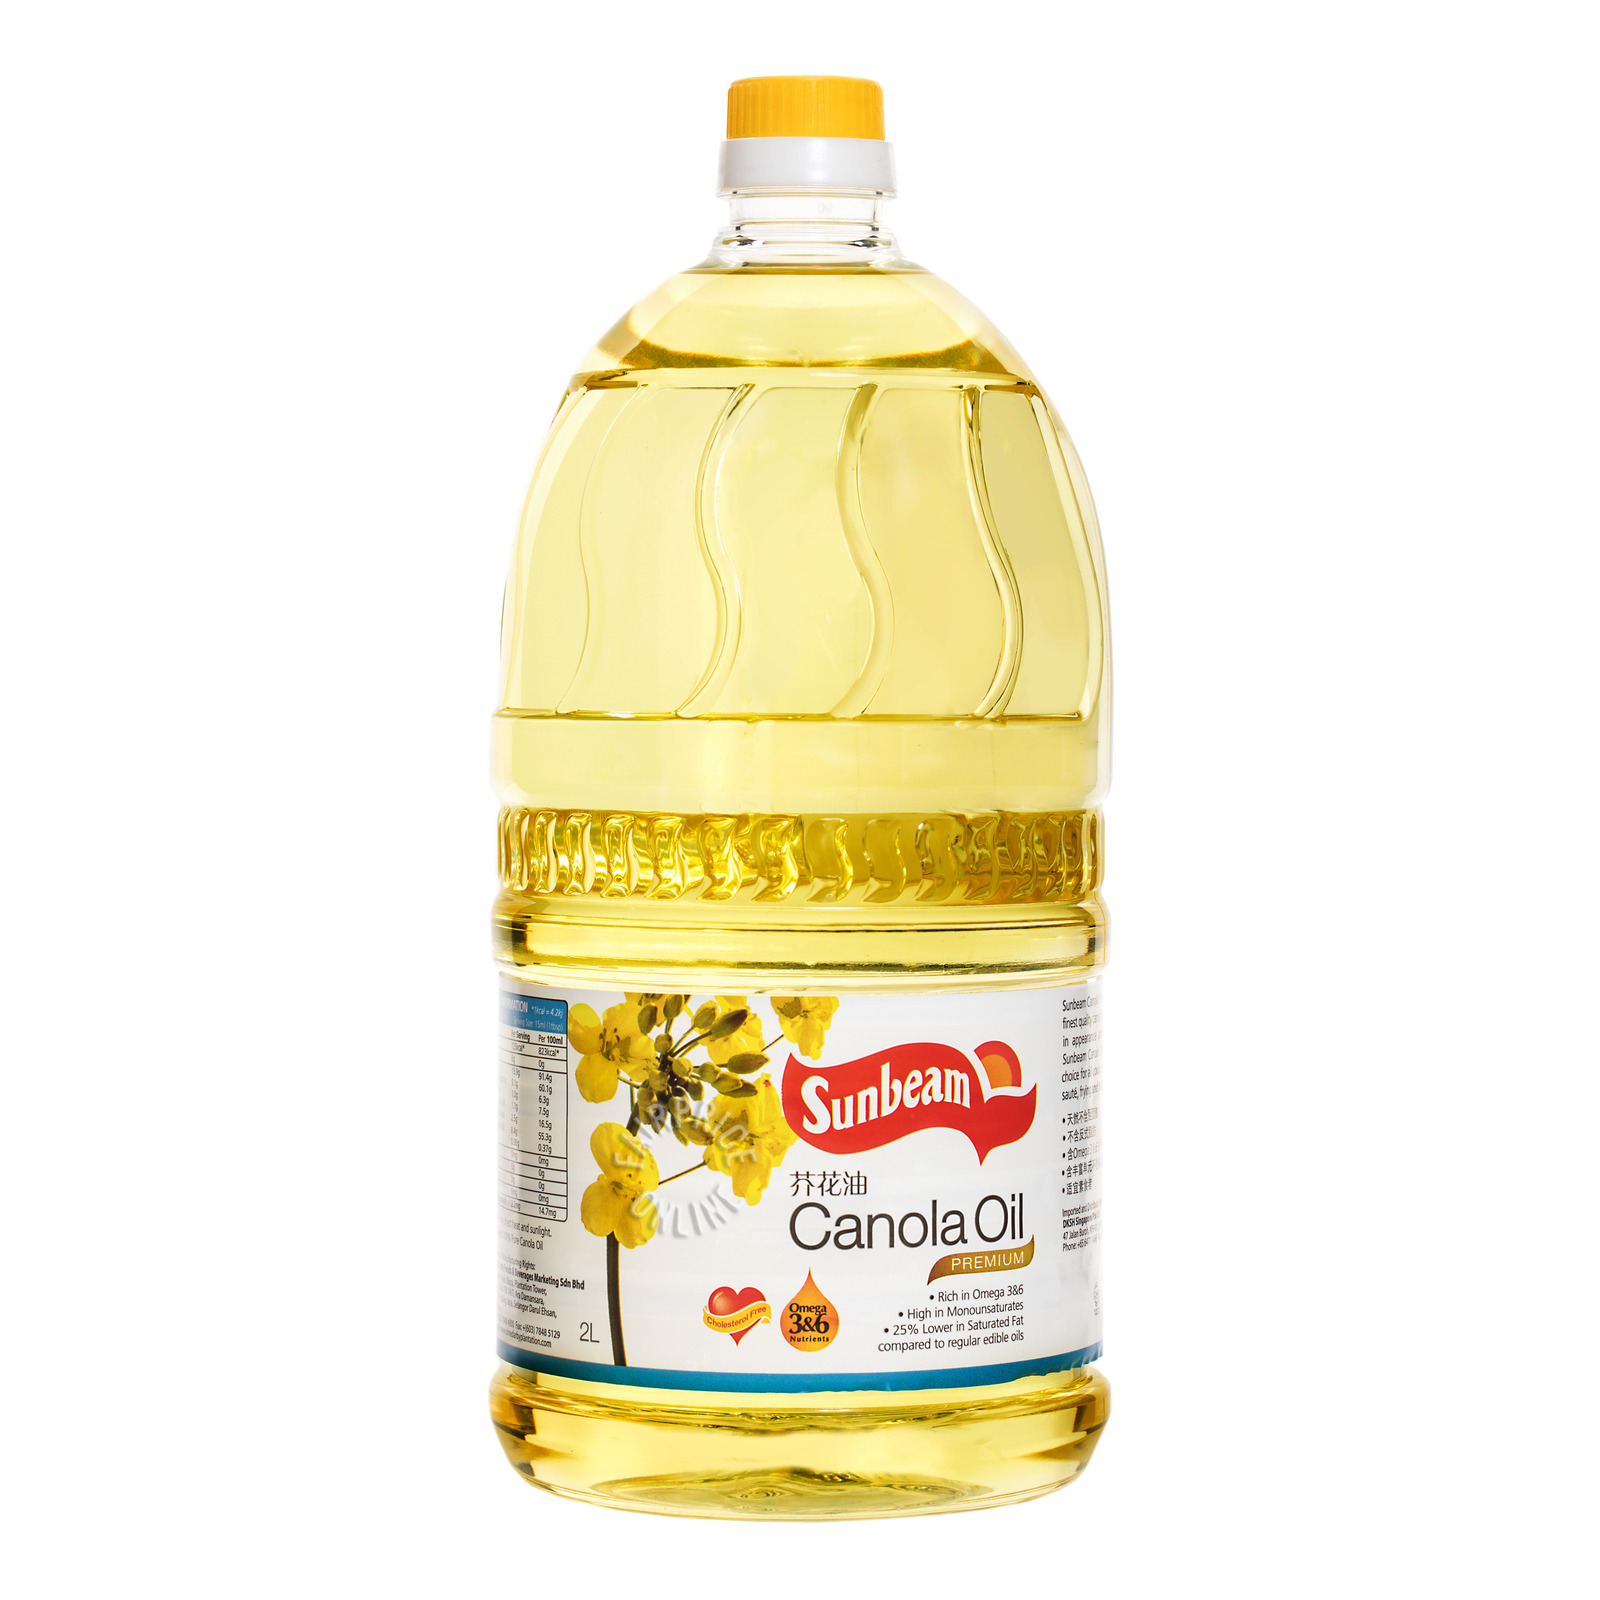 Sunbeam Premium Canola Oil